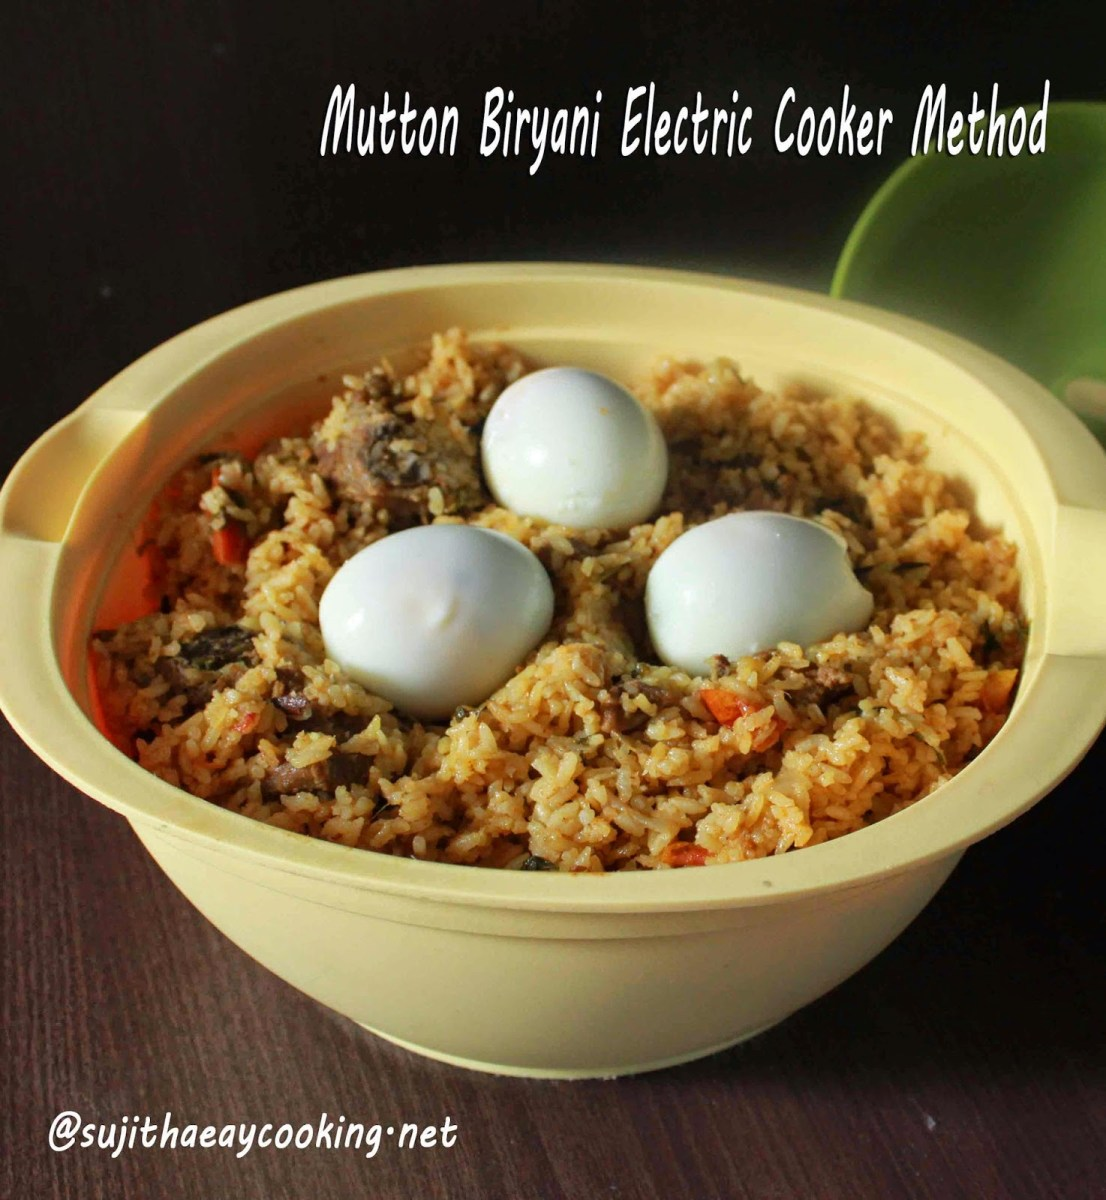 Mutton Biryani- Electric Cooker Method